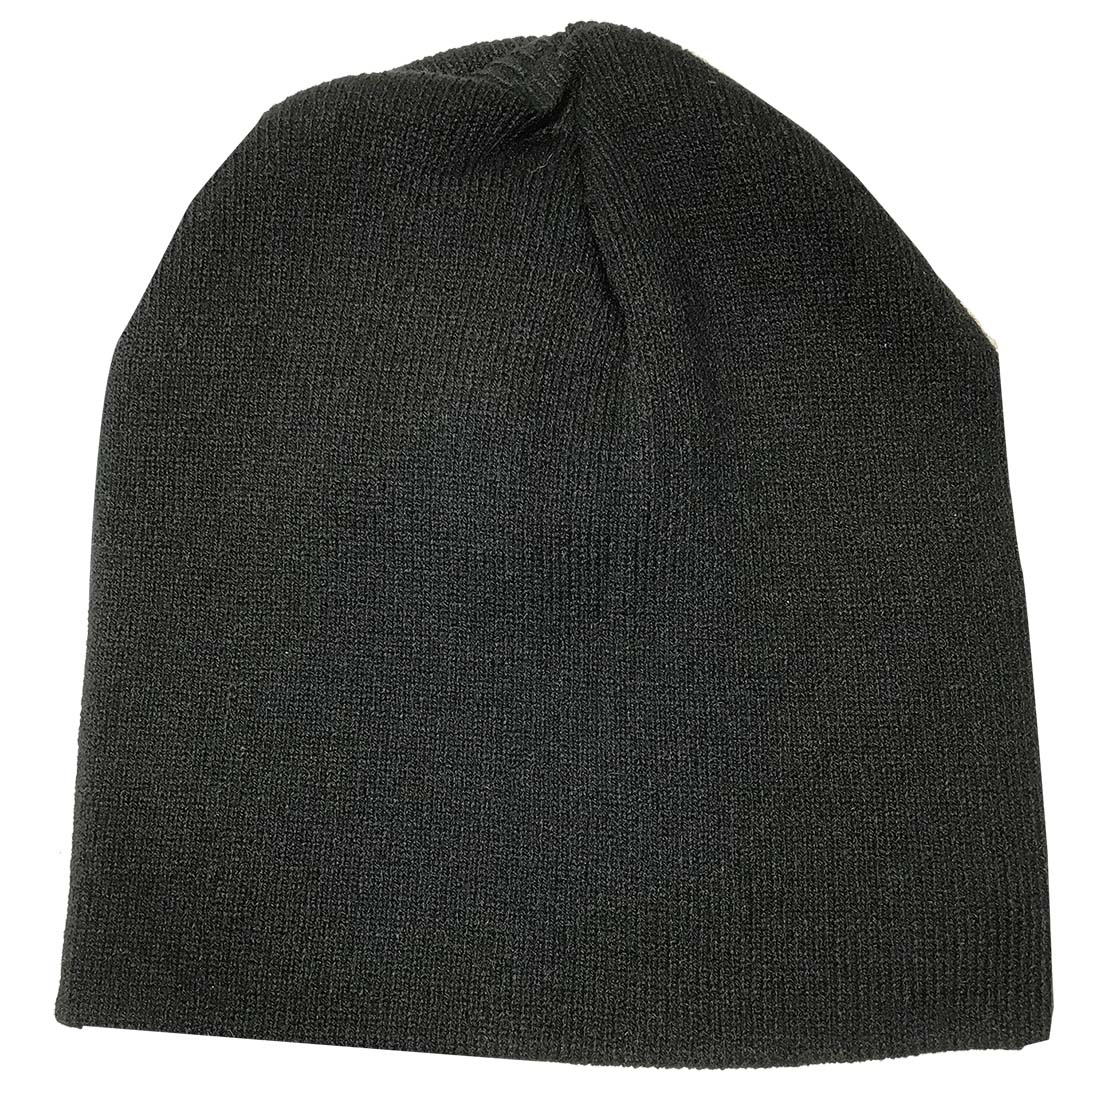 View BLACK KNIT HAT UNISEX ONE SIZE FITS ALL